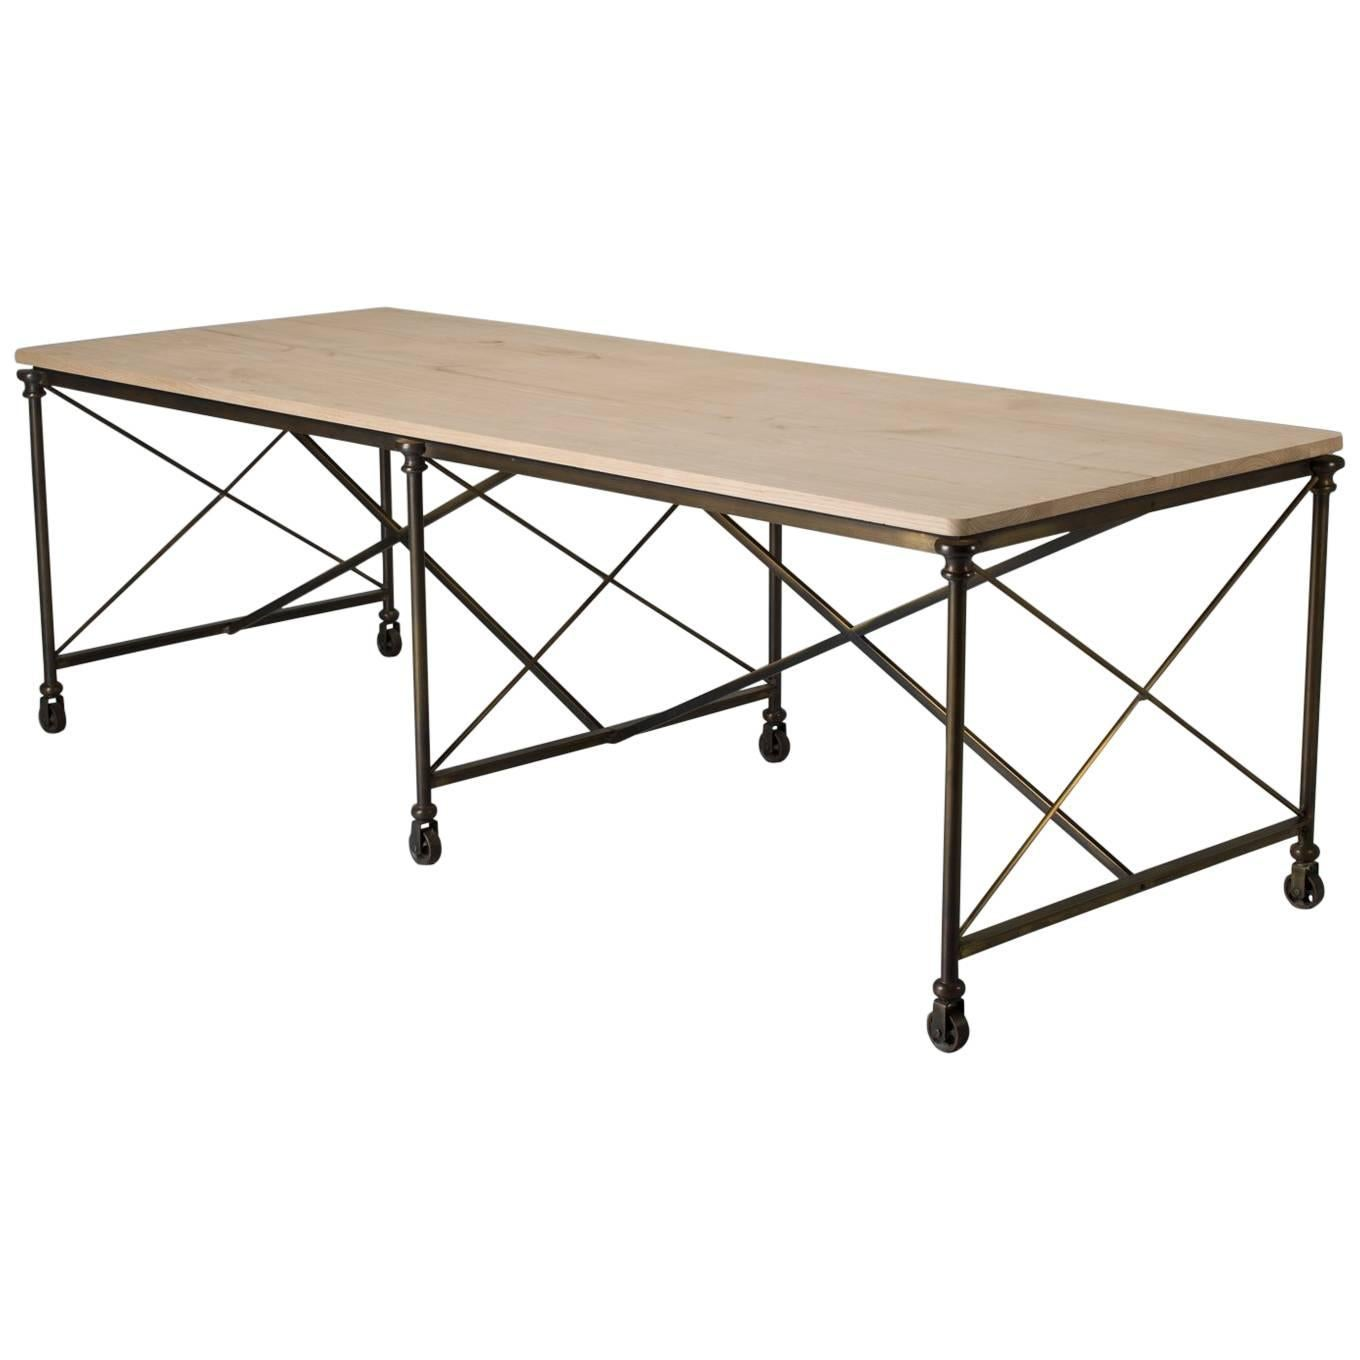 Bronze Dining Table with an Ashwood Top